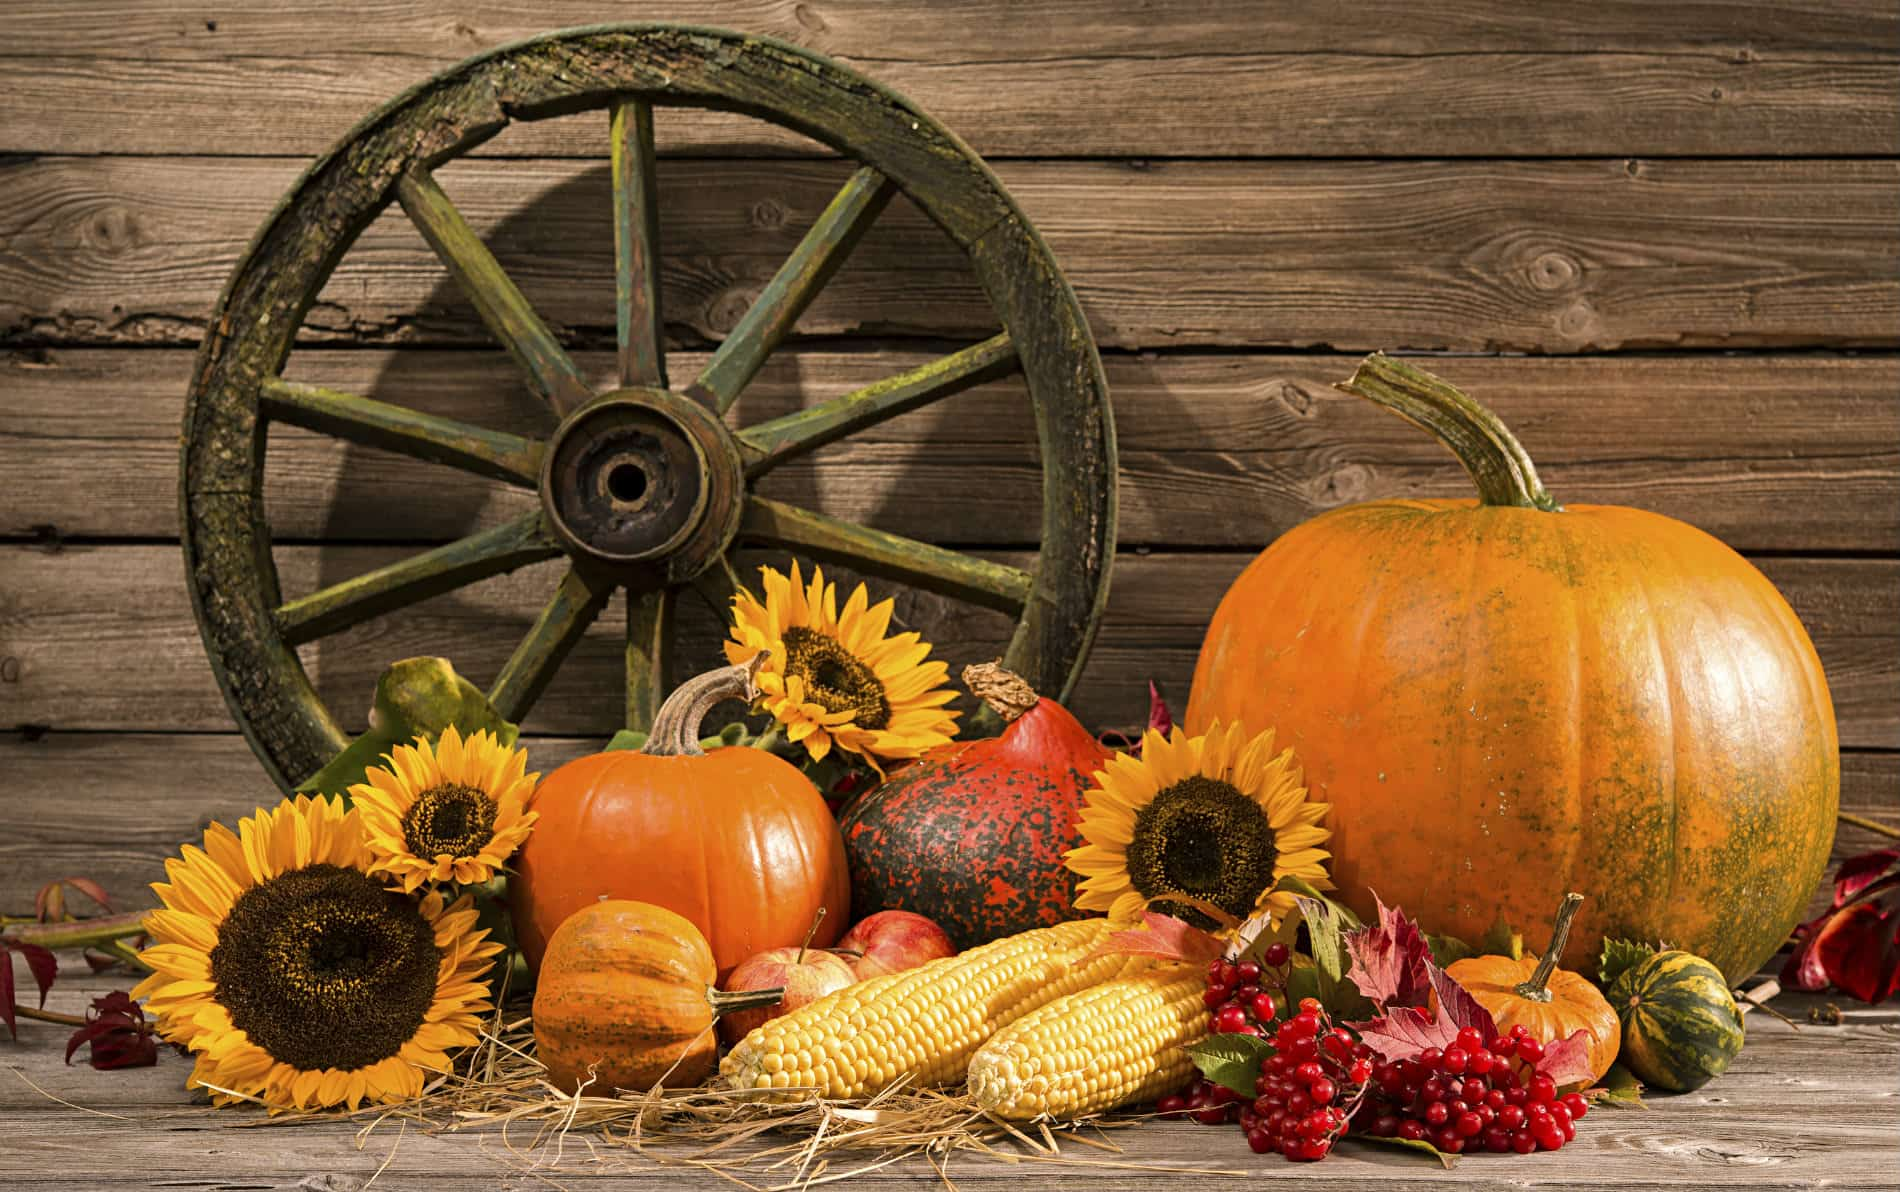 Brown wooden wall with wooden spoke wheel in front of orange pumpkin, yellow corn, red berries and yellow sunflowers